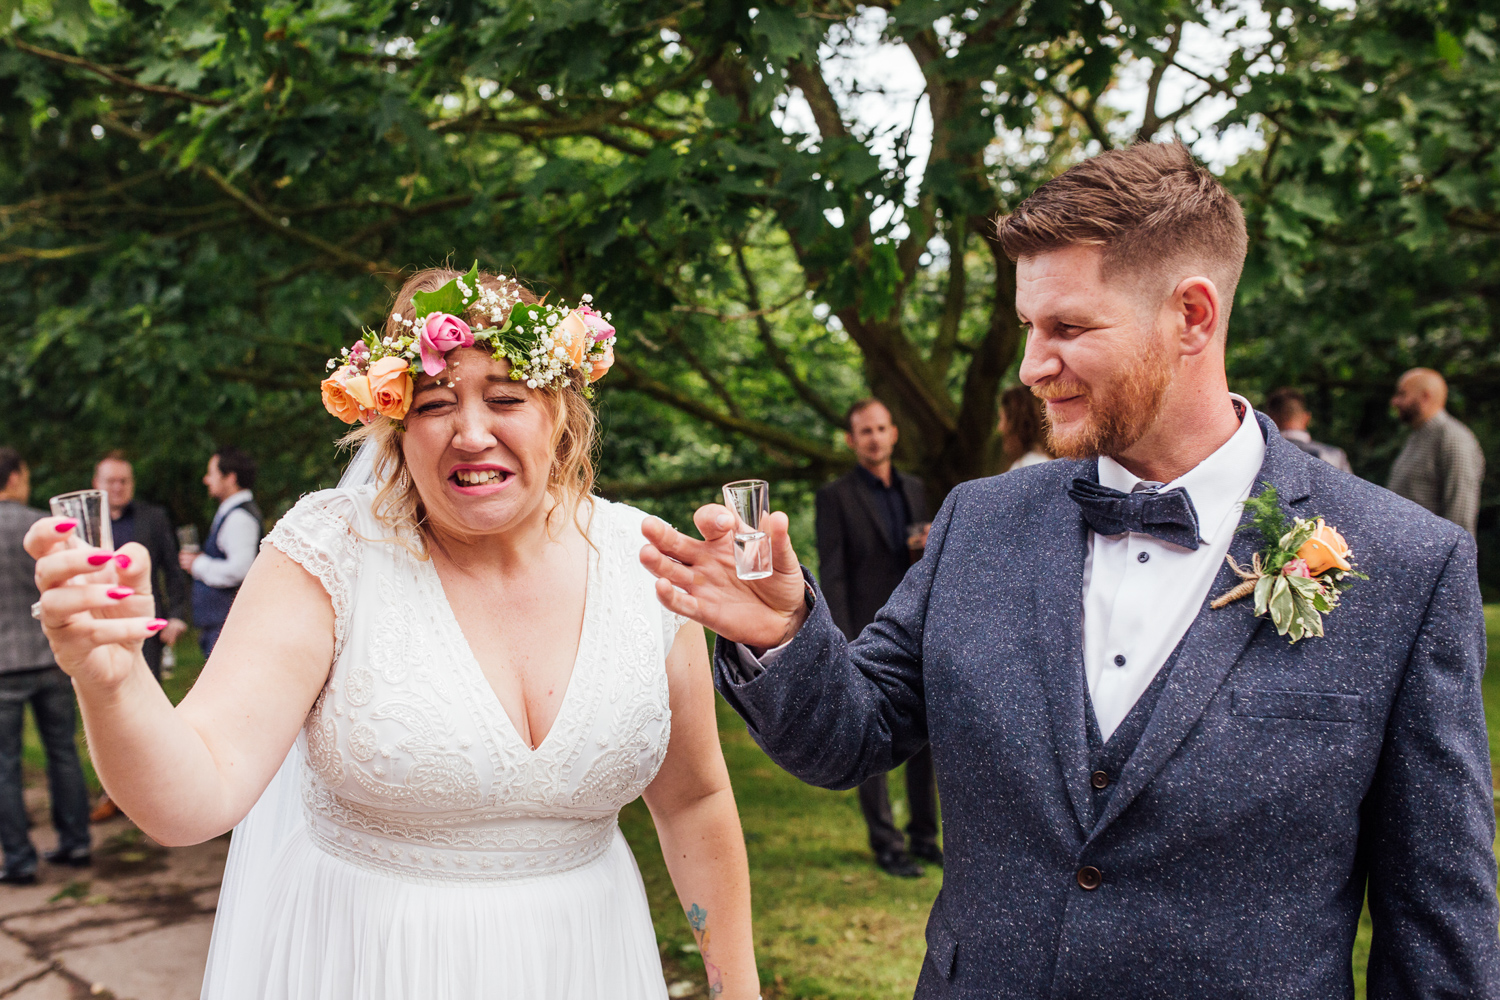 Shropshire Wedding Photographer - Favourites 2019favourites-43.jpg